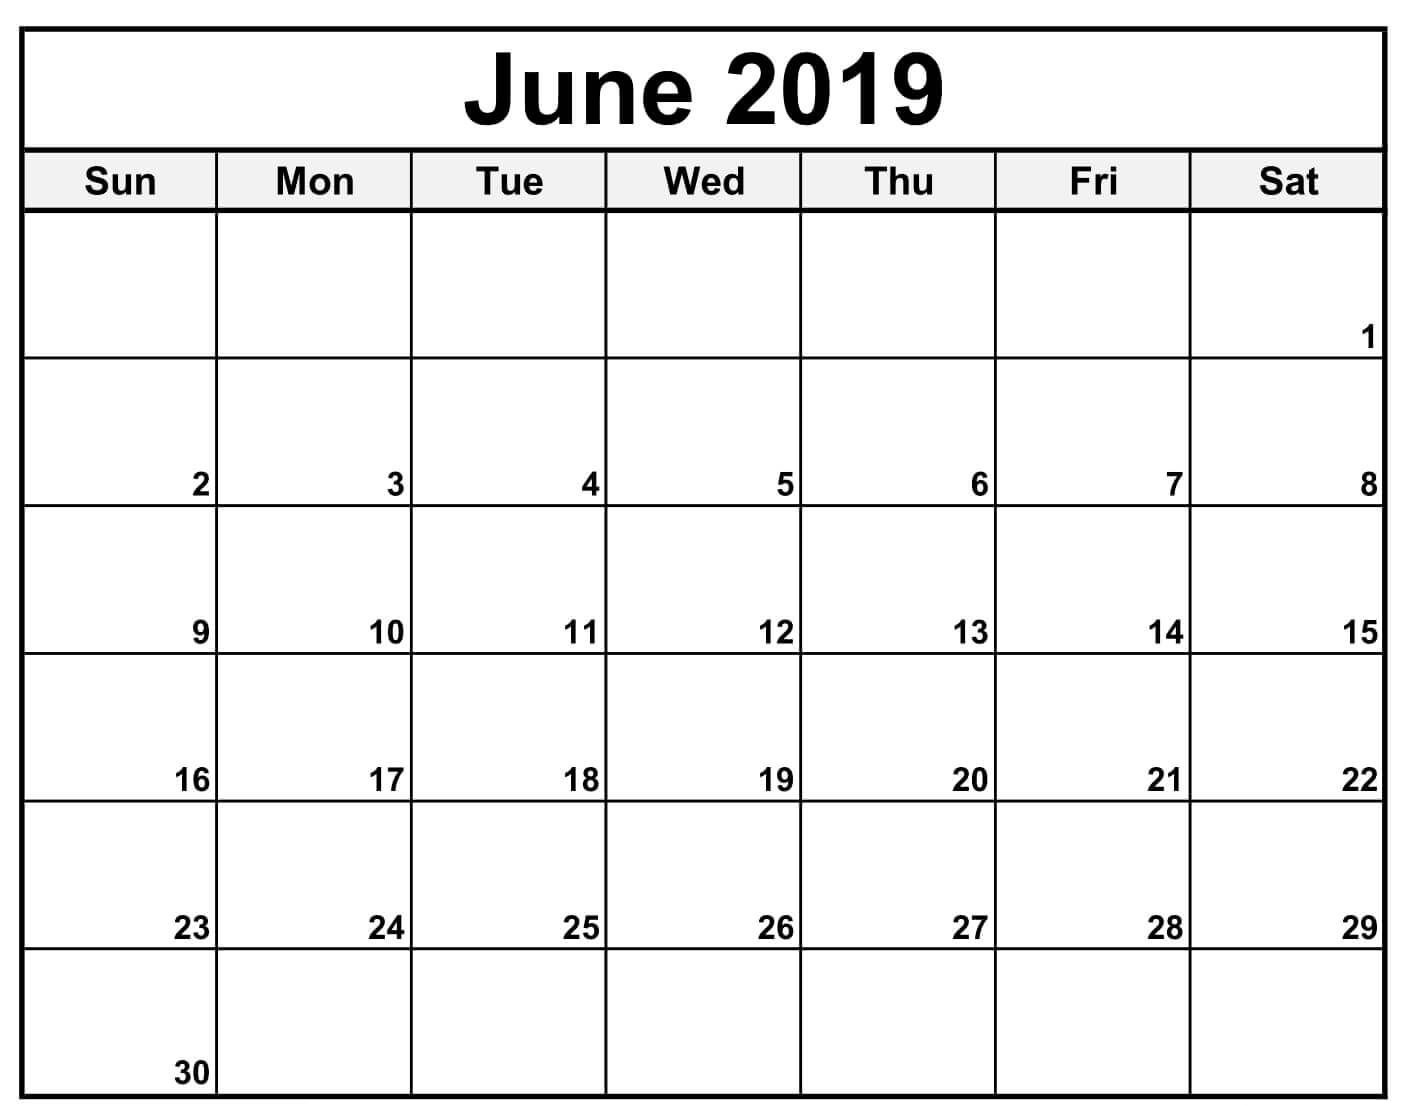 Blank June 2019 Calendar Waterproof – Free Printable Calendar regarding Free Printable 2020 Waterproof Calendars